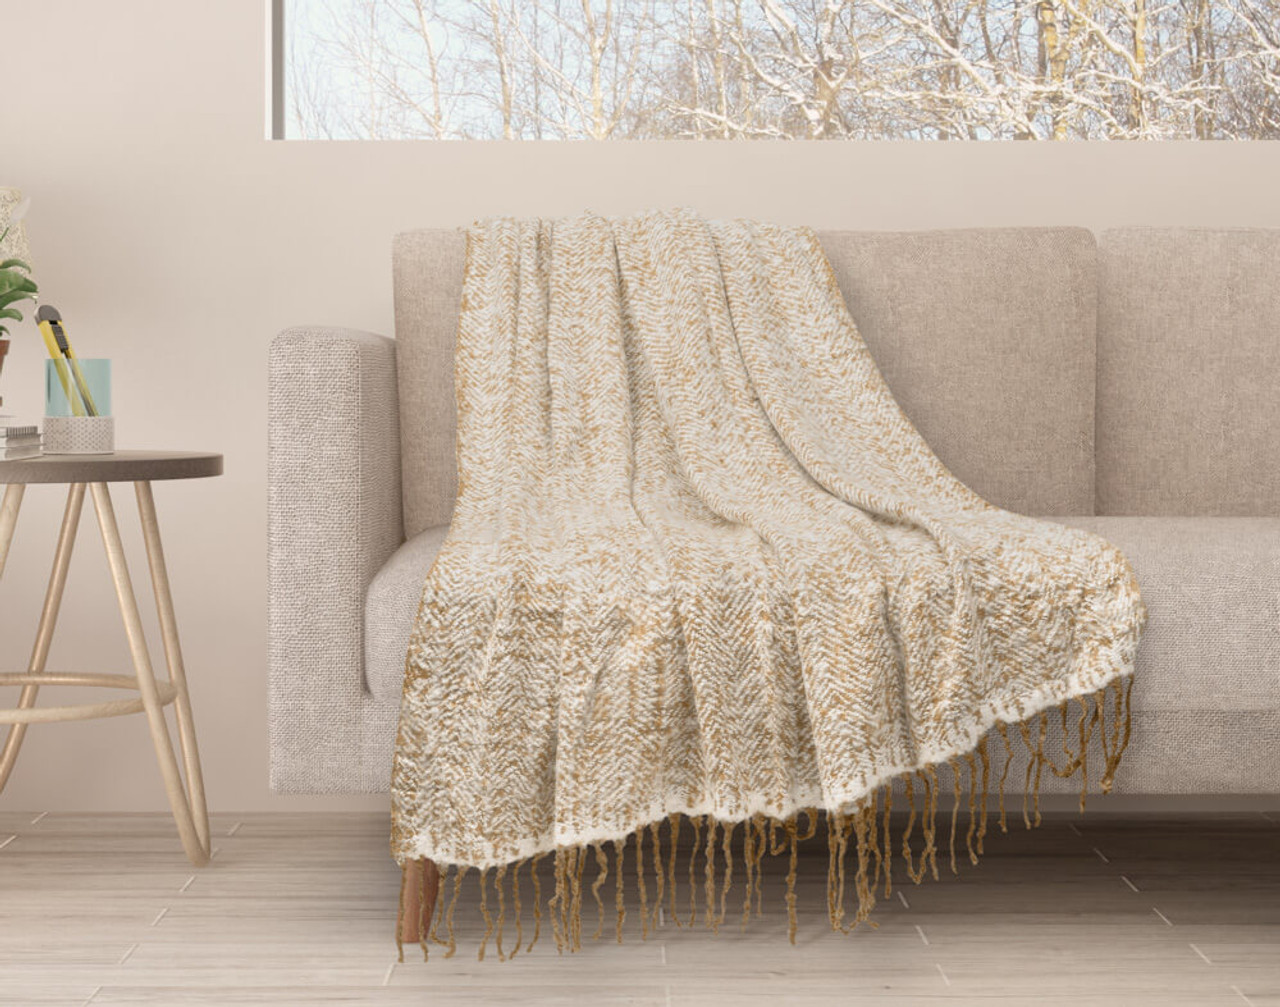 Our Oat Mix Herringbone Knit Fringe Throw draped over a couch.